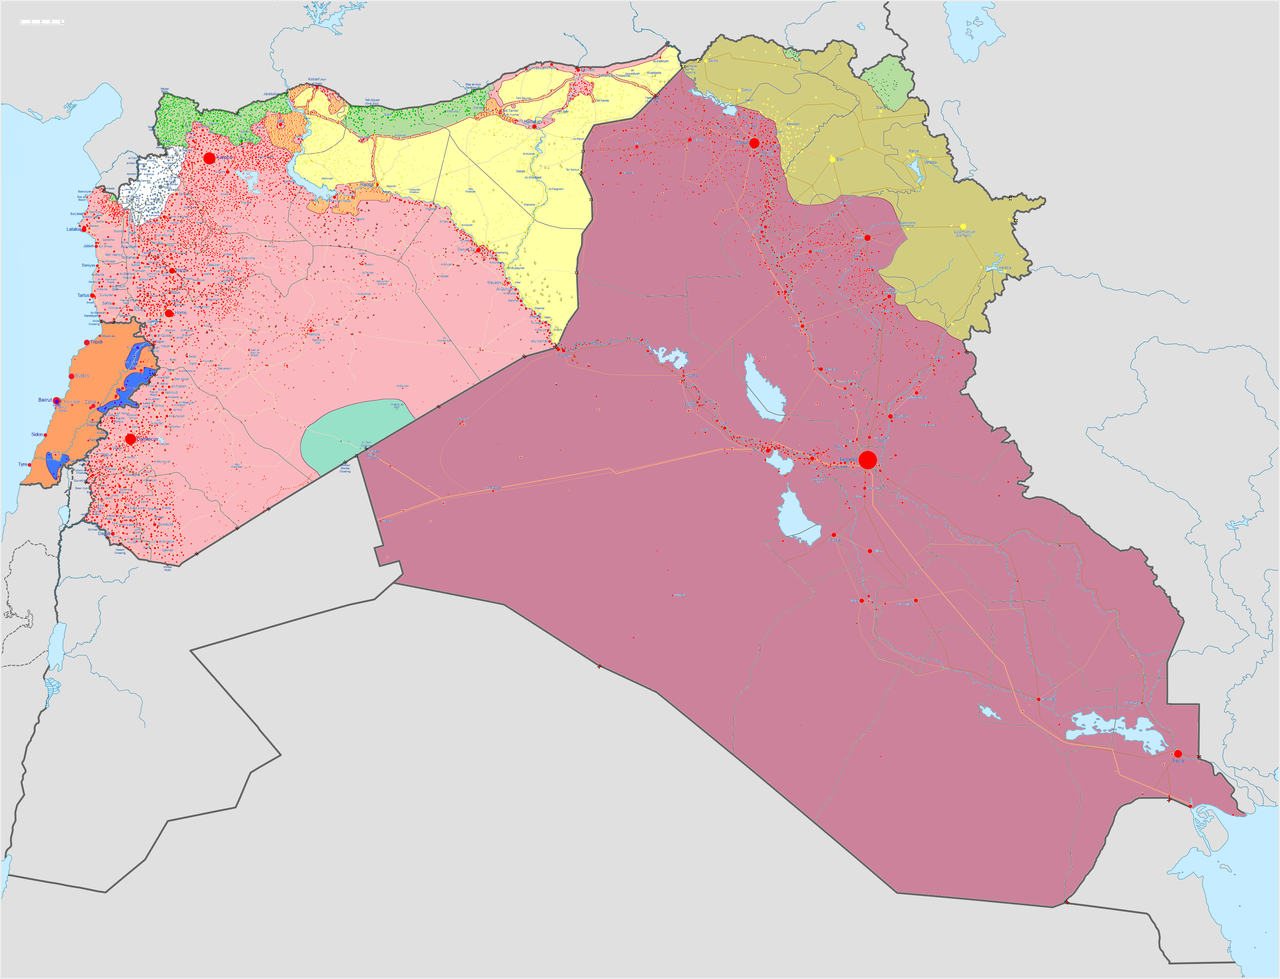 Military situation as of 24 June 2015, in the Iraqi, Syrian, and Lebanese conflicts.  Controlled by Iraqi Government forces  Controlled by Syrian Government forces  Controlled by the Lebanese Government  Controlled by the Islamic State of Iraq and the Levant  Controlled by Iraqi Kurdistan forces  Controlled by Syrian Kurdistan forces  Controlled by Syrian Opposition forces  Controlled by Hezbollah  Controlled by al-Nusra Front Note: Iraq and Syria contain large desert areas with limited populations. These areas are mapped as under the control of forces holding roads and towns within them. Detailed map of Syrian Civil WarDetailed map of Iraqi insurgencyDetailed map of Lebanese insurgencyDetailed map of Libyan Civil WarDetailed map of Yemeni Civil War